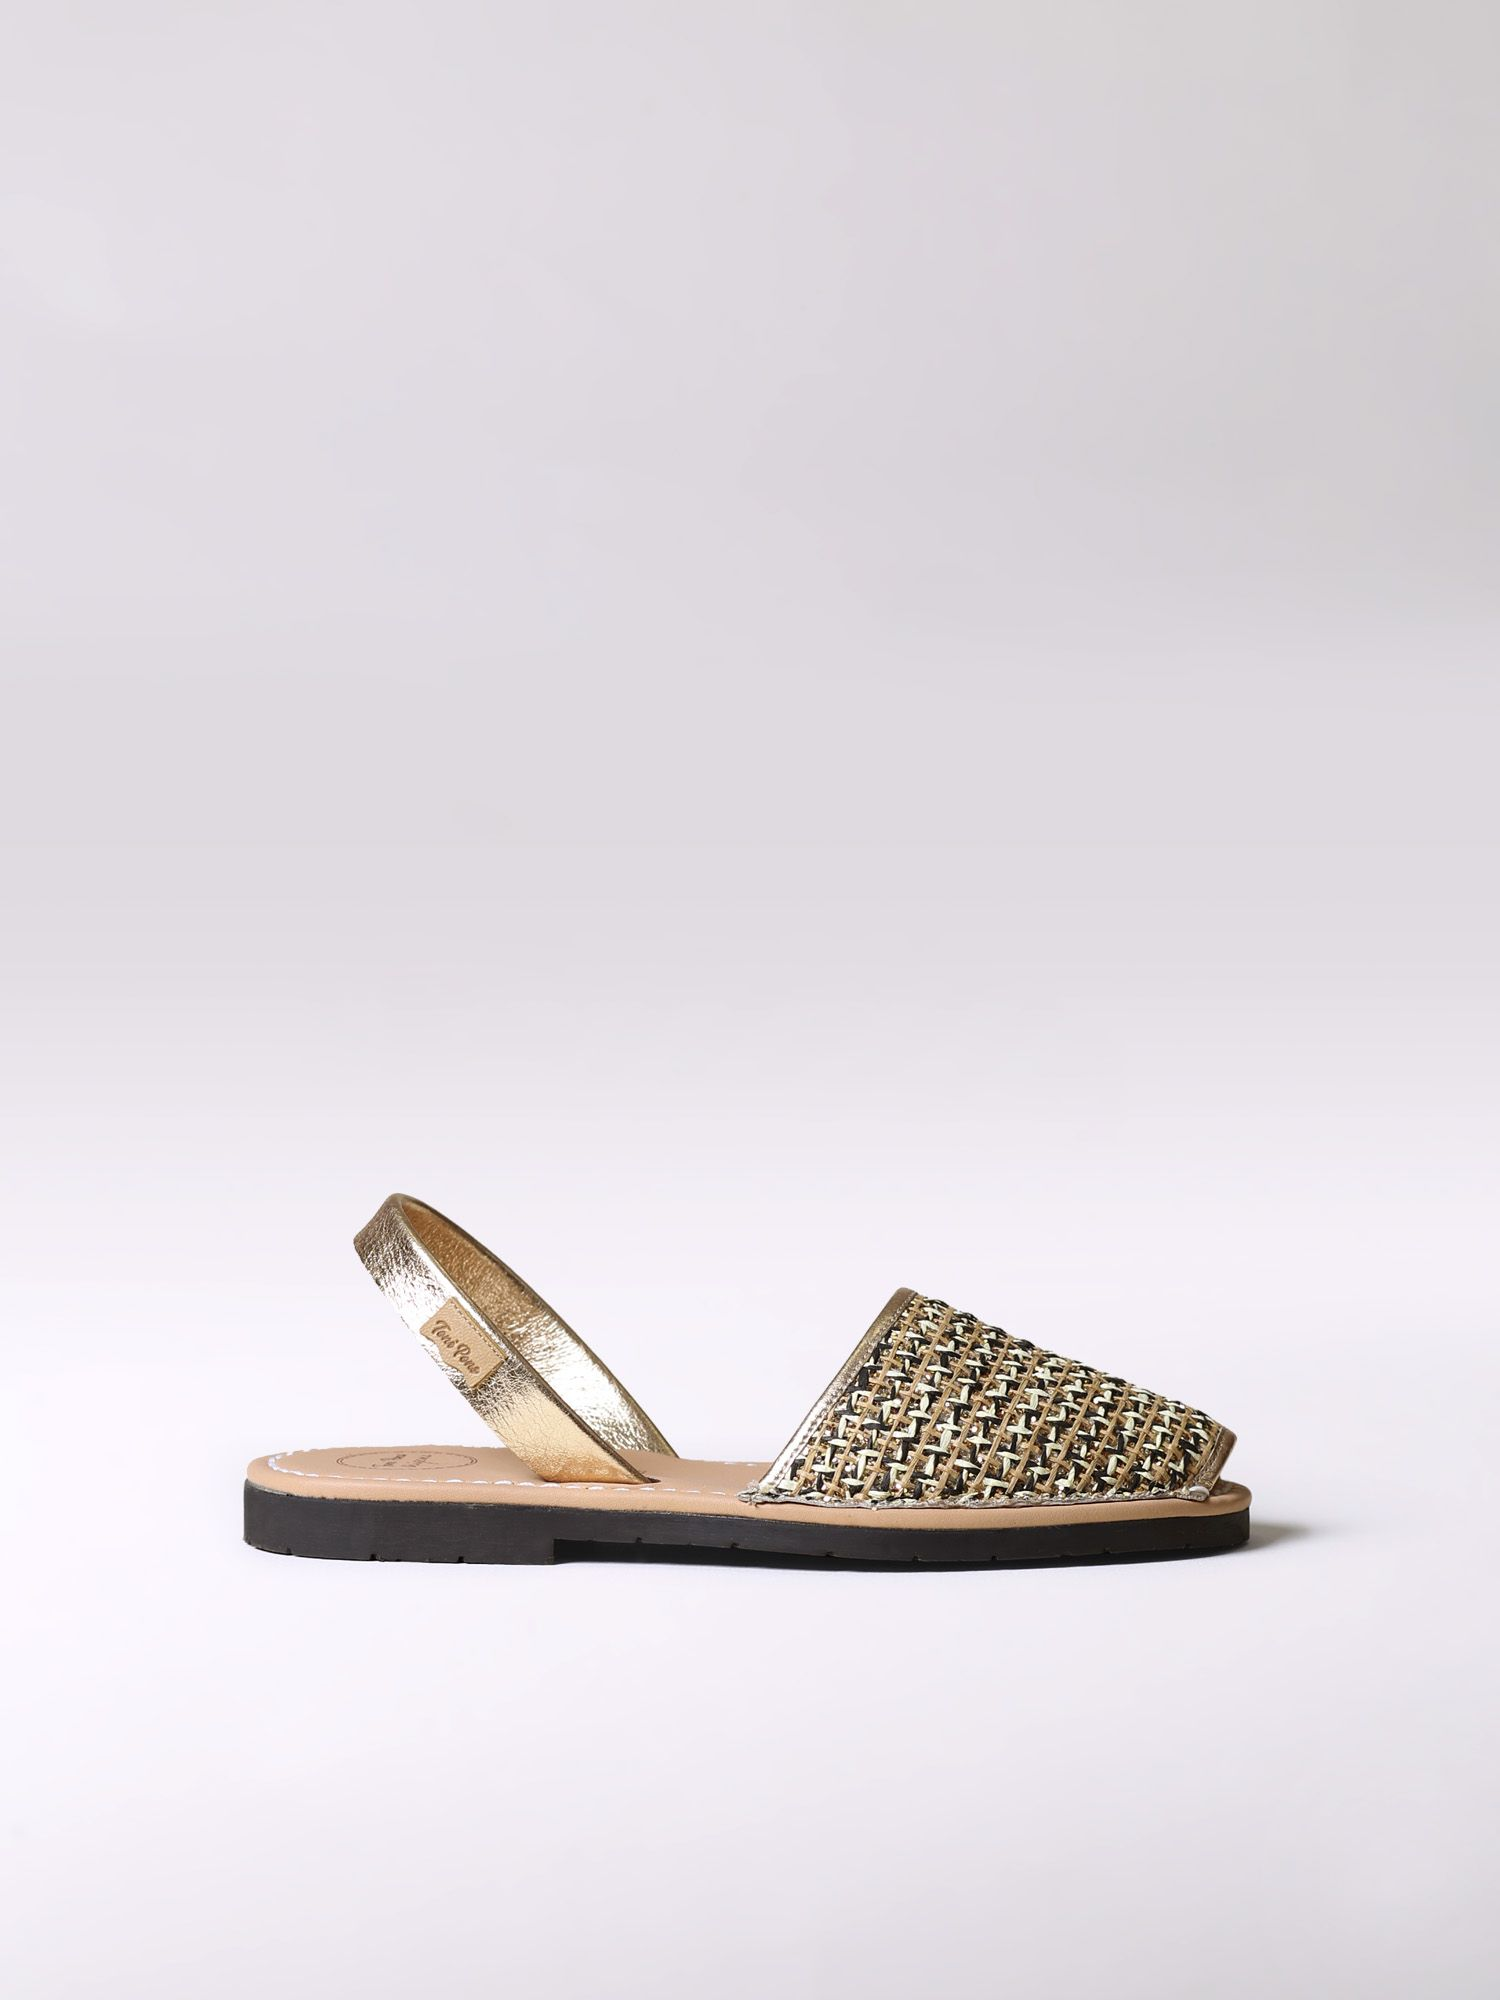 Leather avarca sandal - MAO-PA